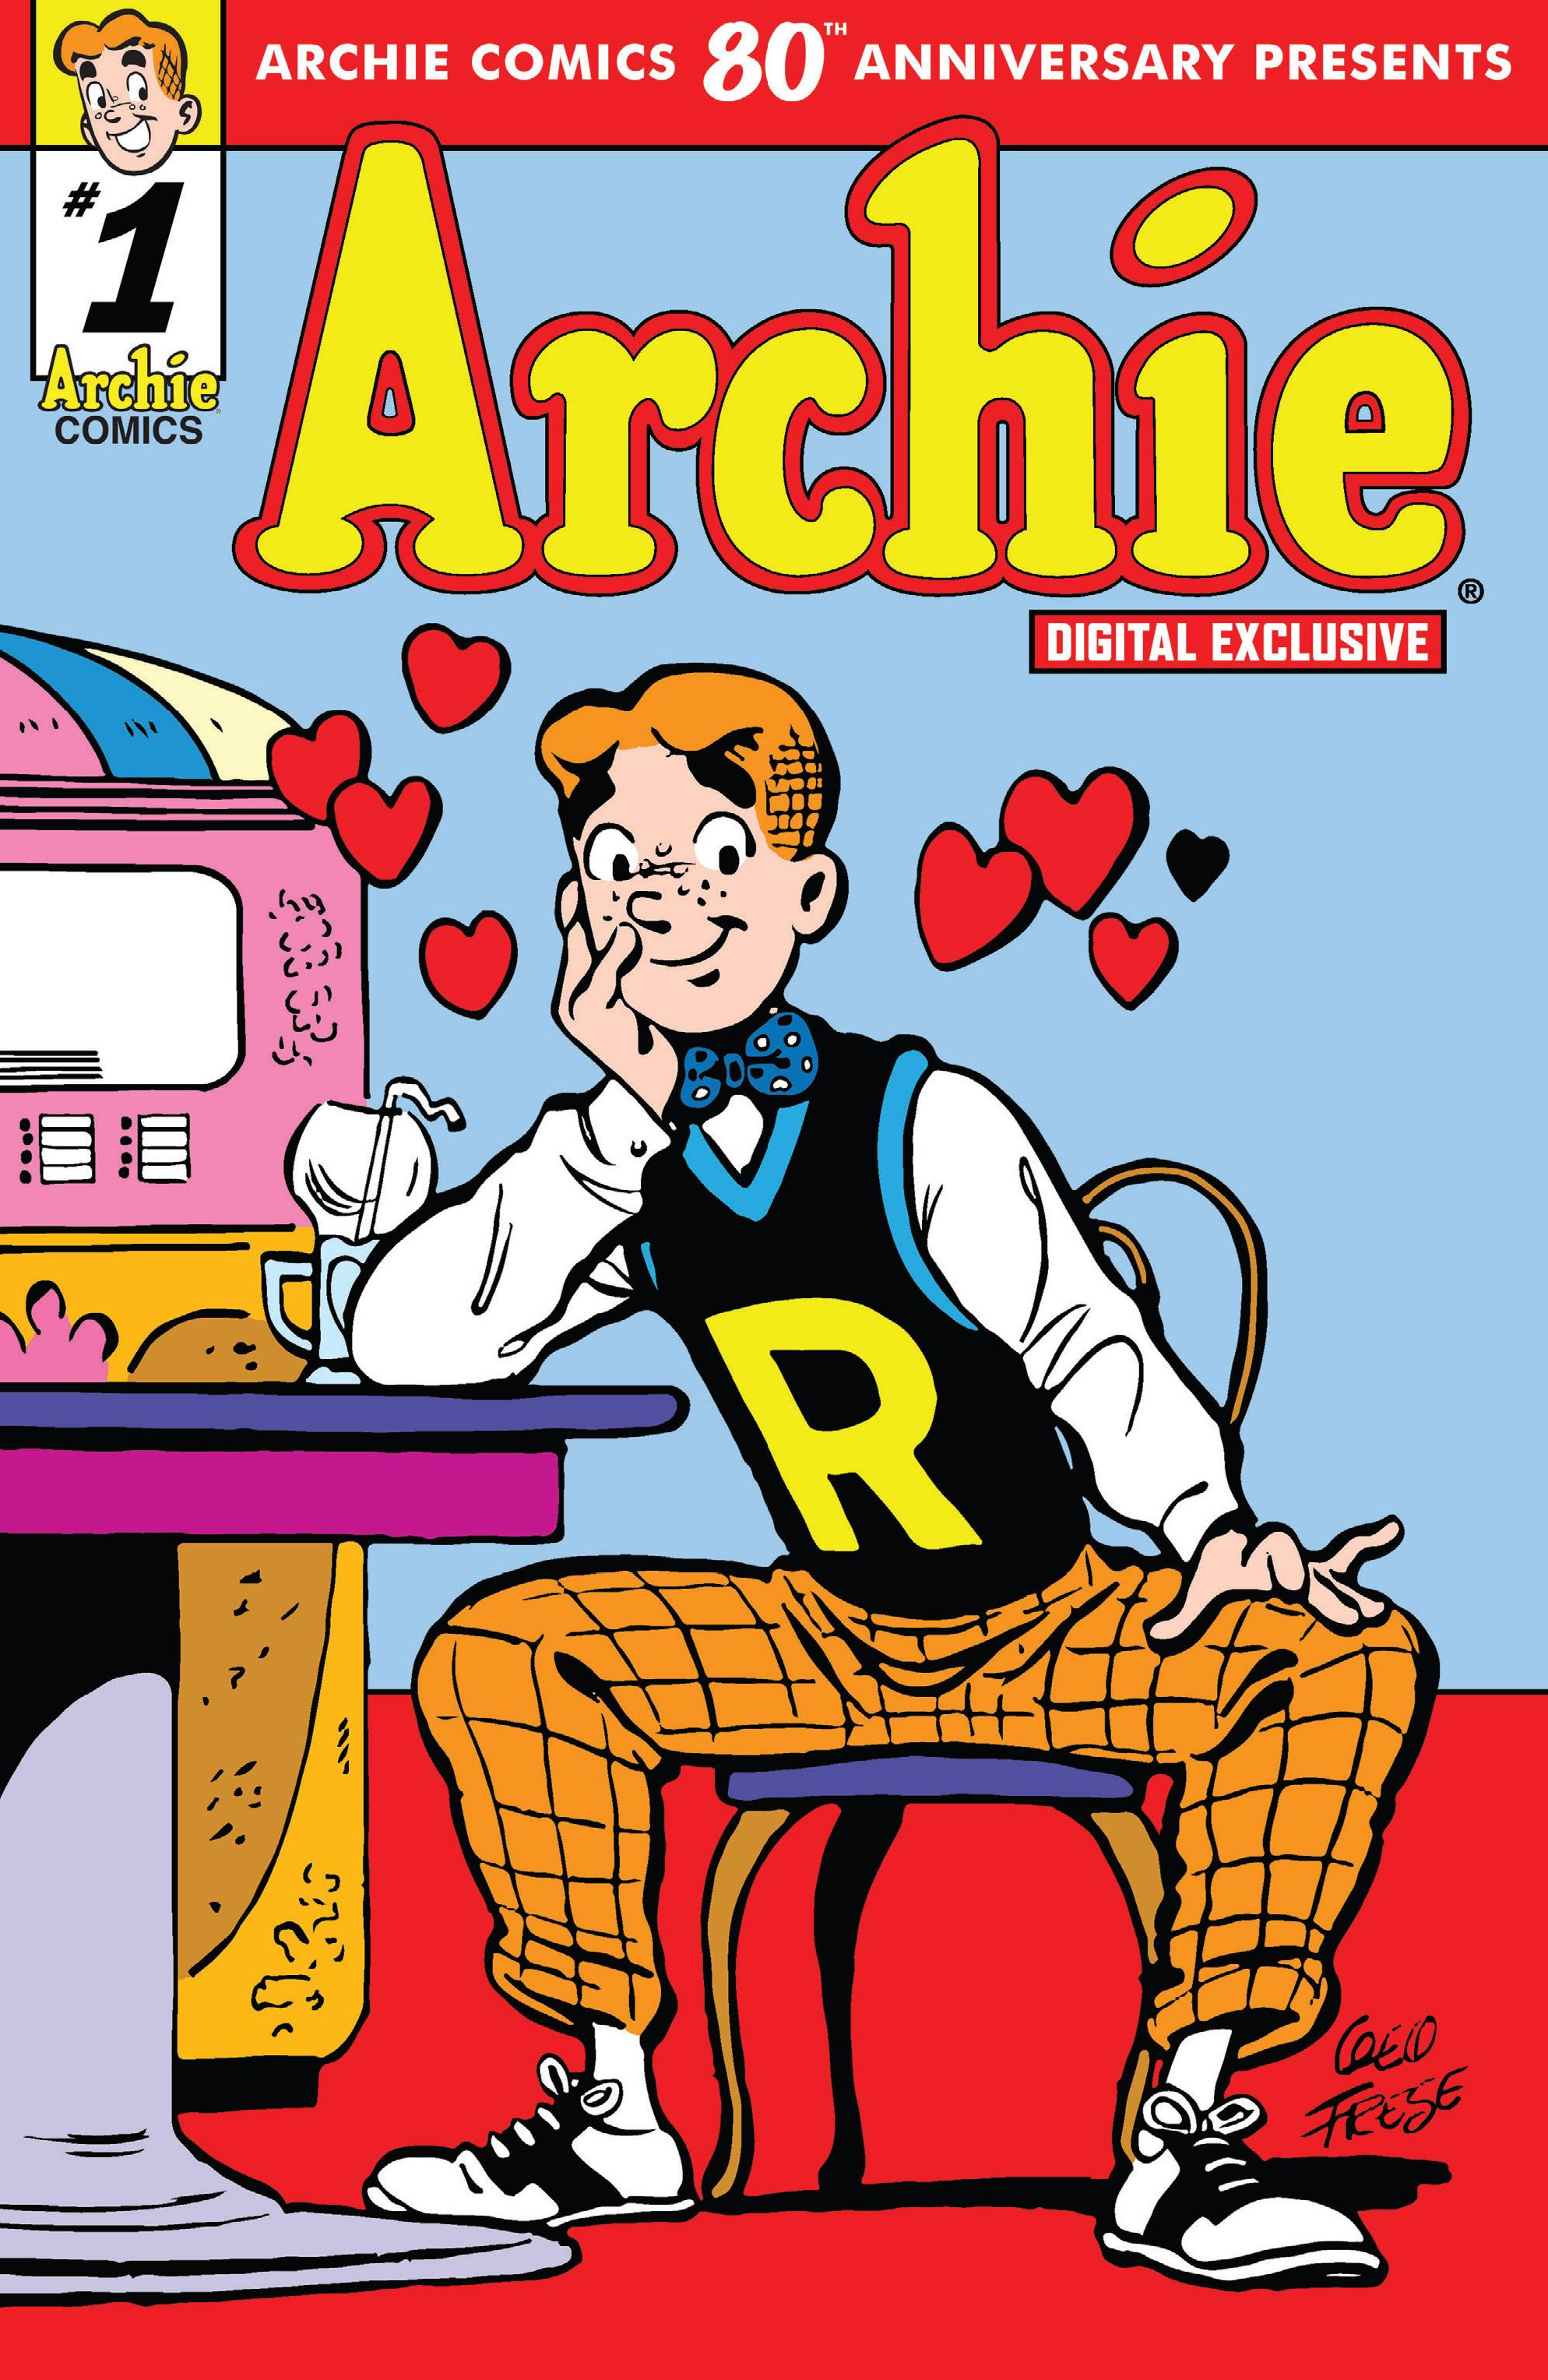 Archie Comics 80th Anniversary Presents 001-Archie 2020 Forsythe